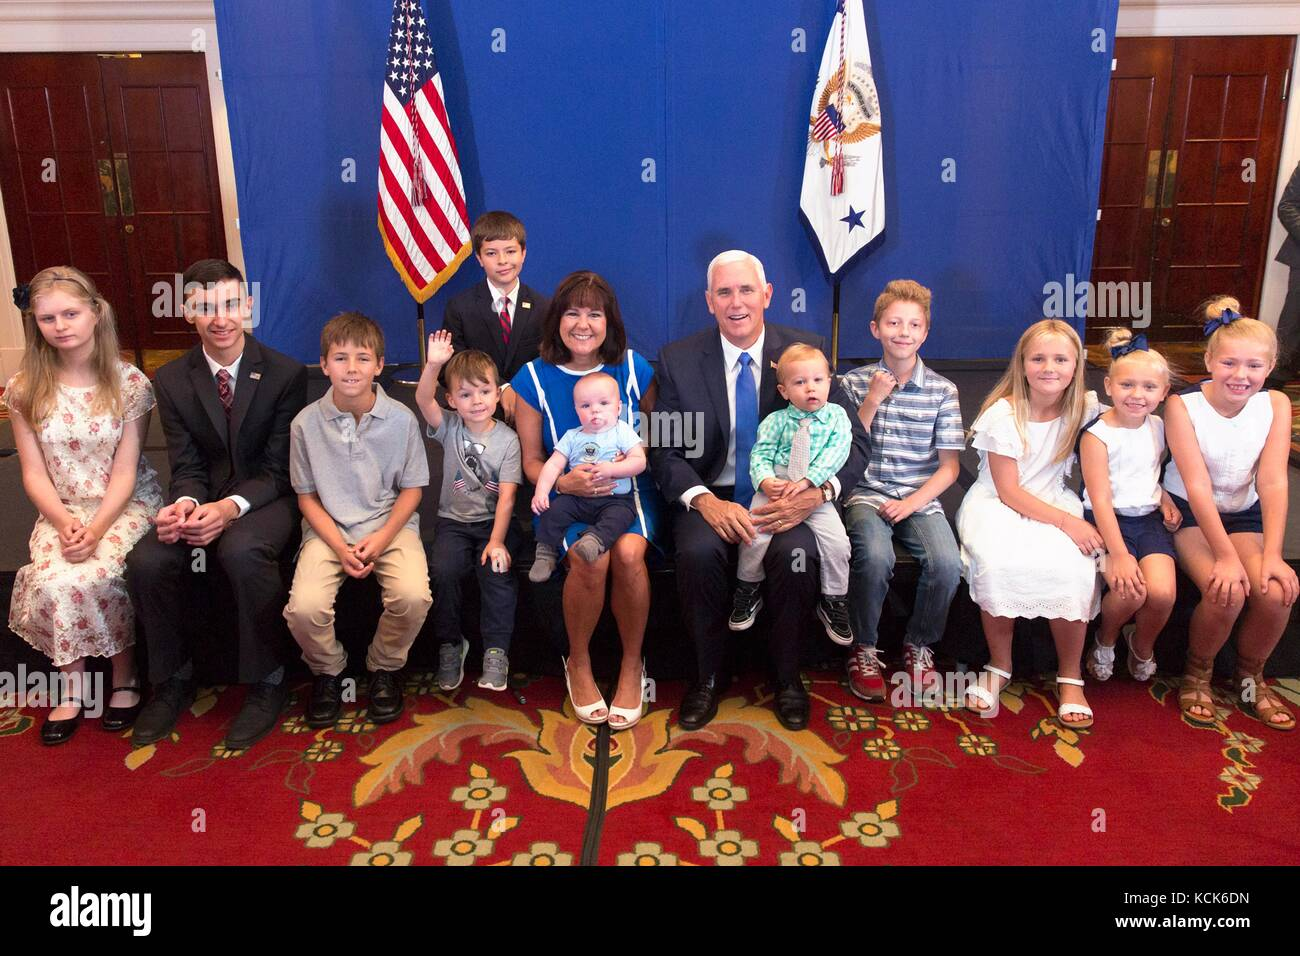 U.S. Vice President Mike Pence and Second Lady Karen Pence meet with Georgian children August 1, 2017 in Tbilisi, - Stock Image